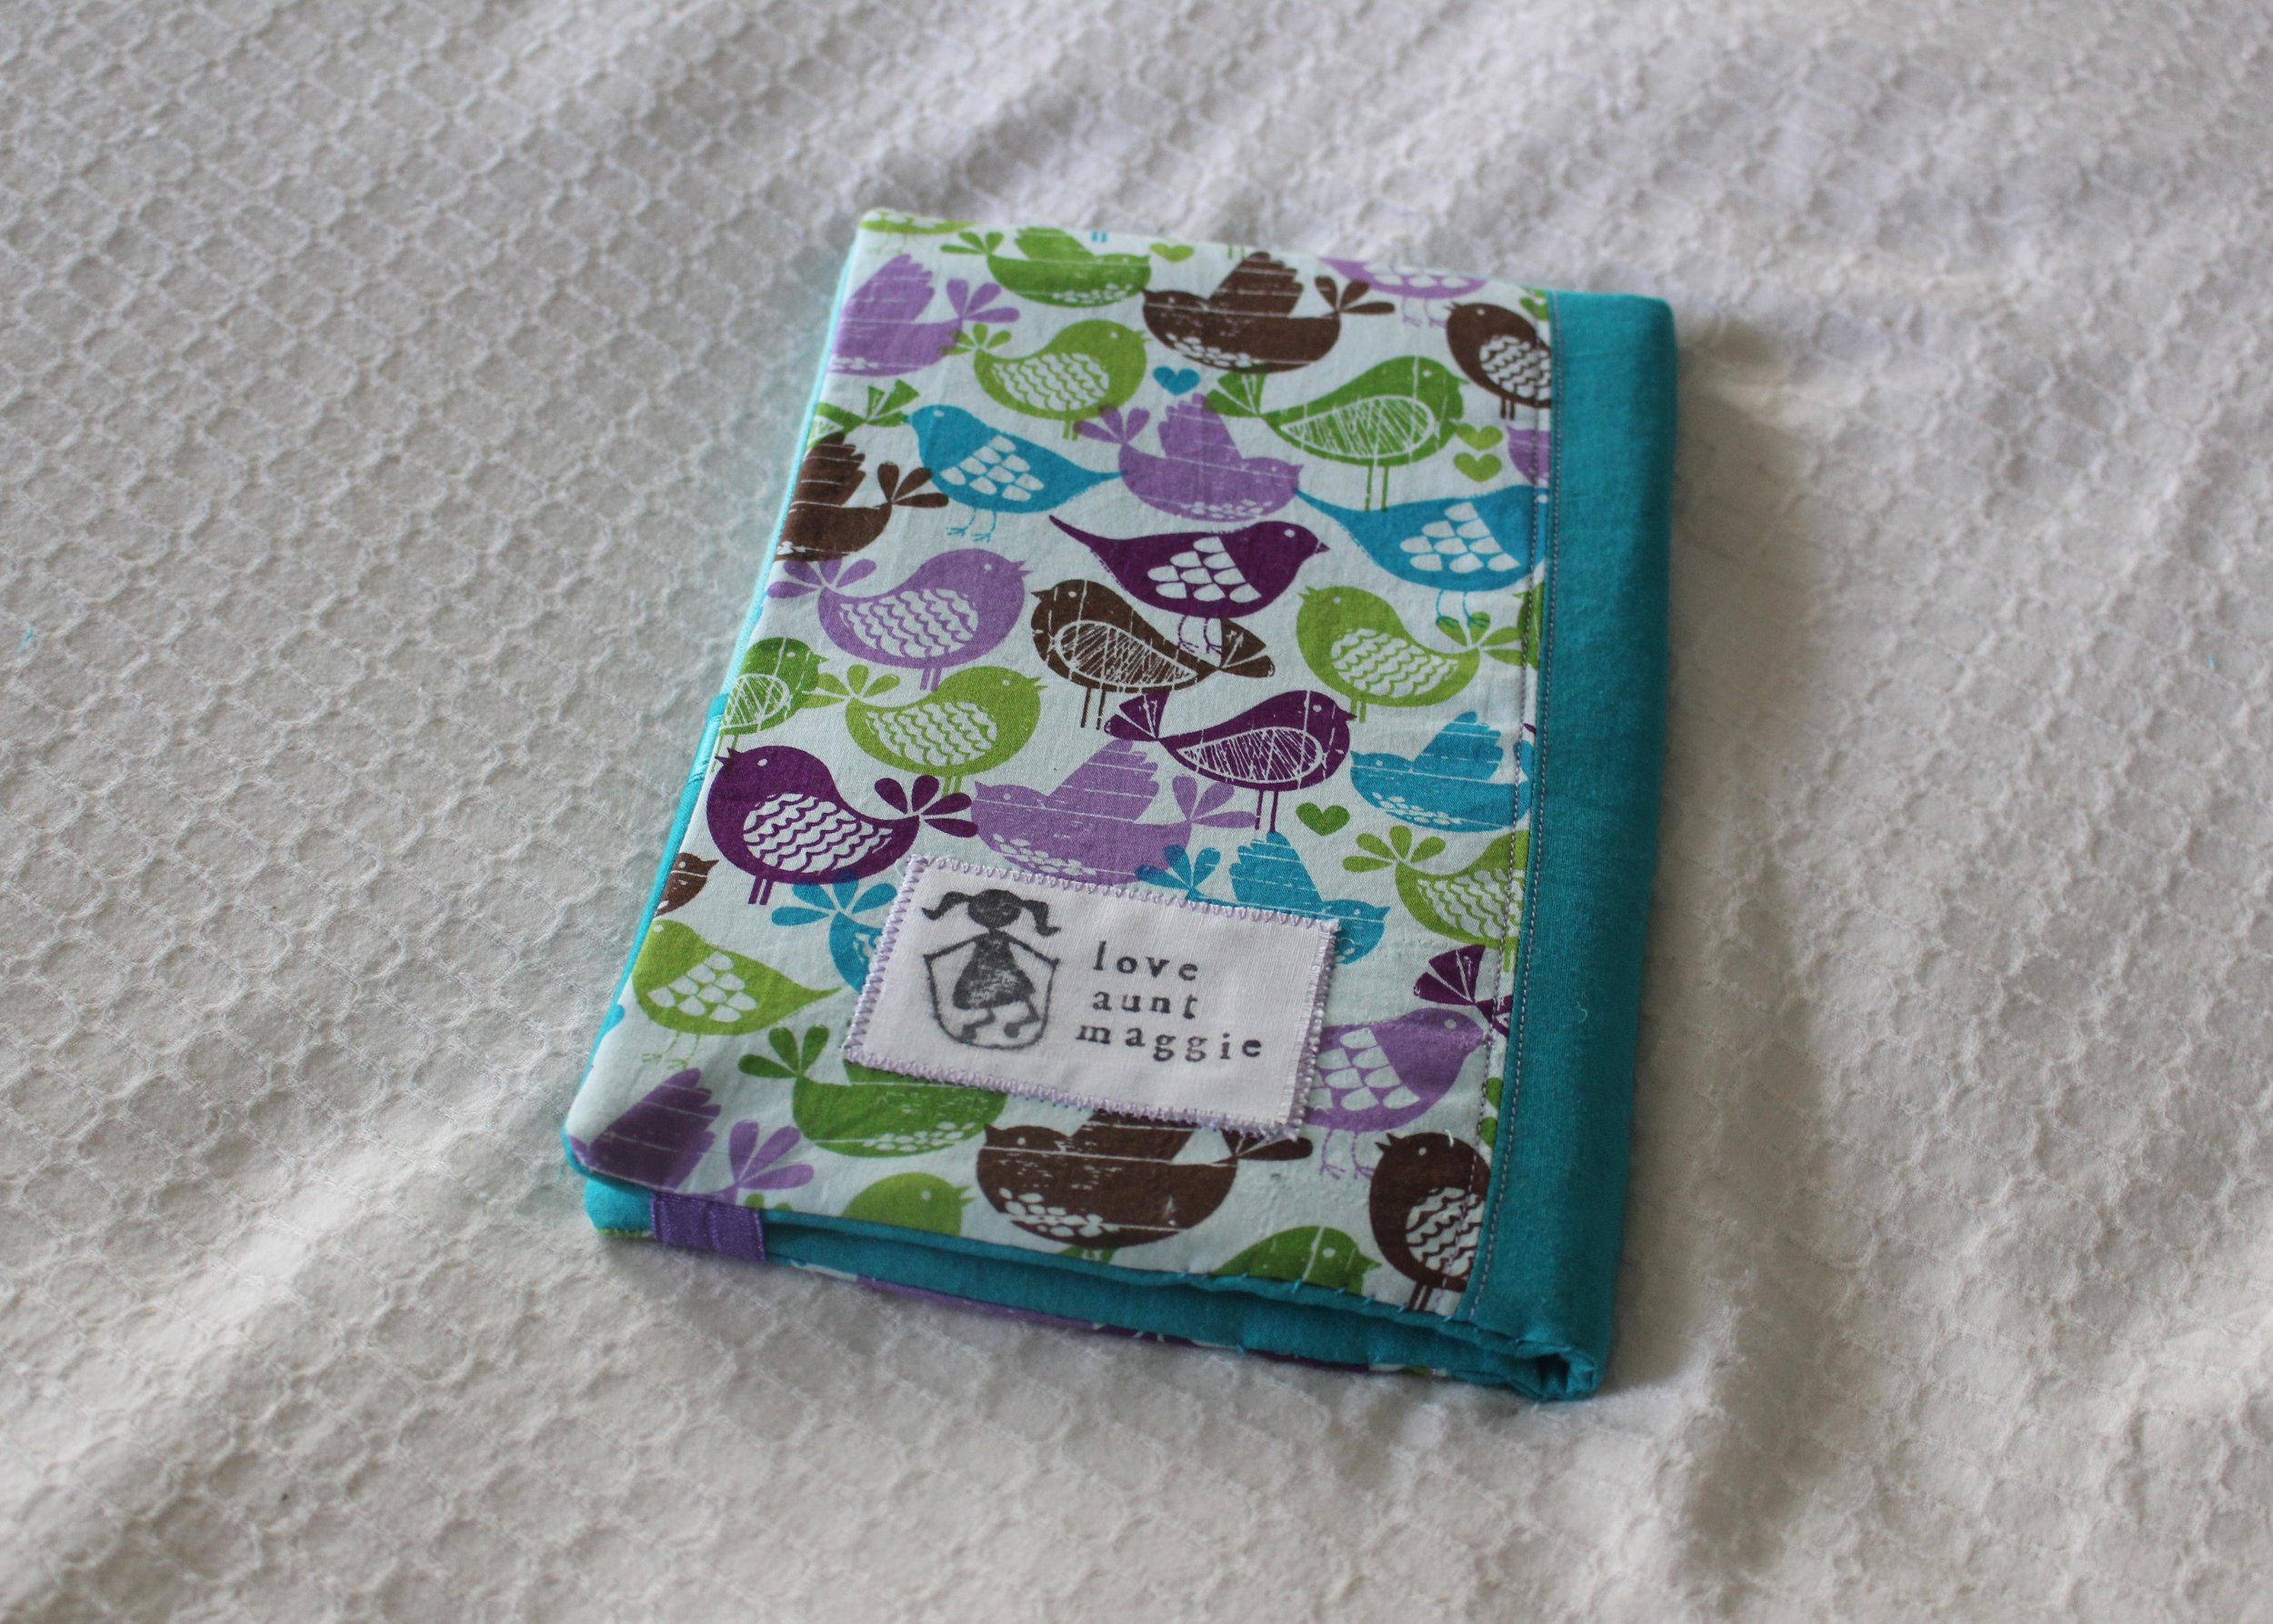 love aunt maggie on the go organizers